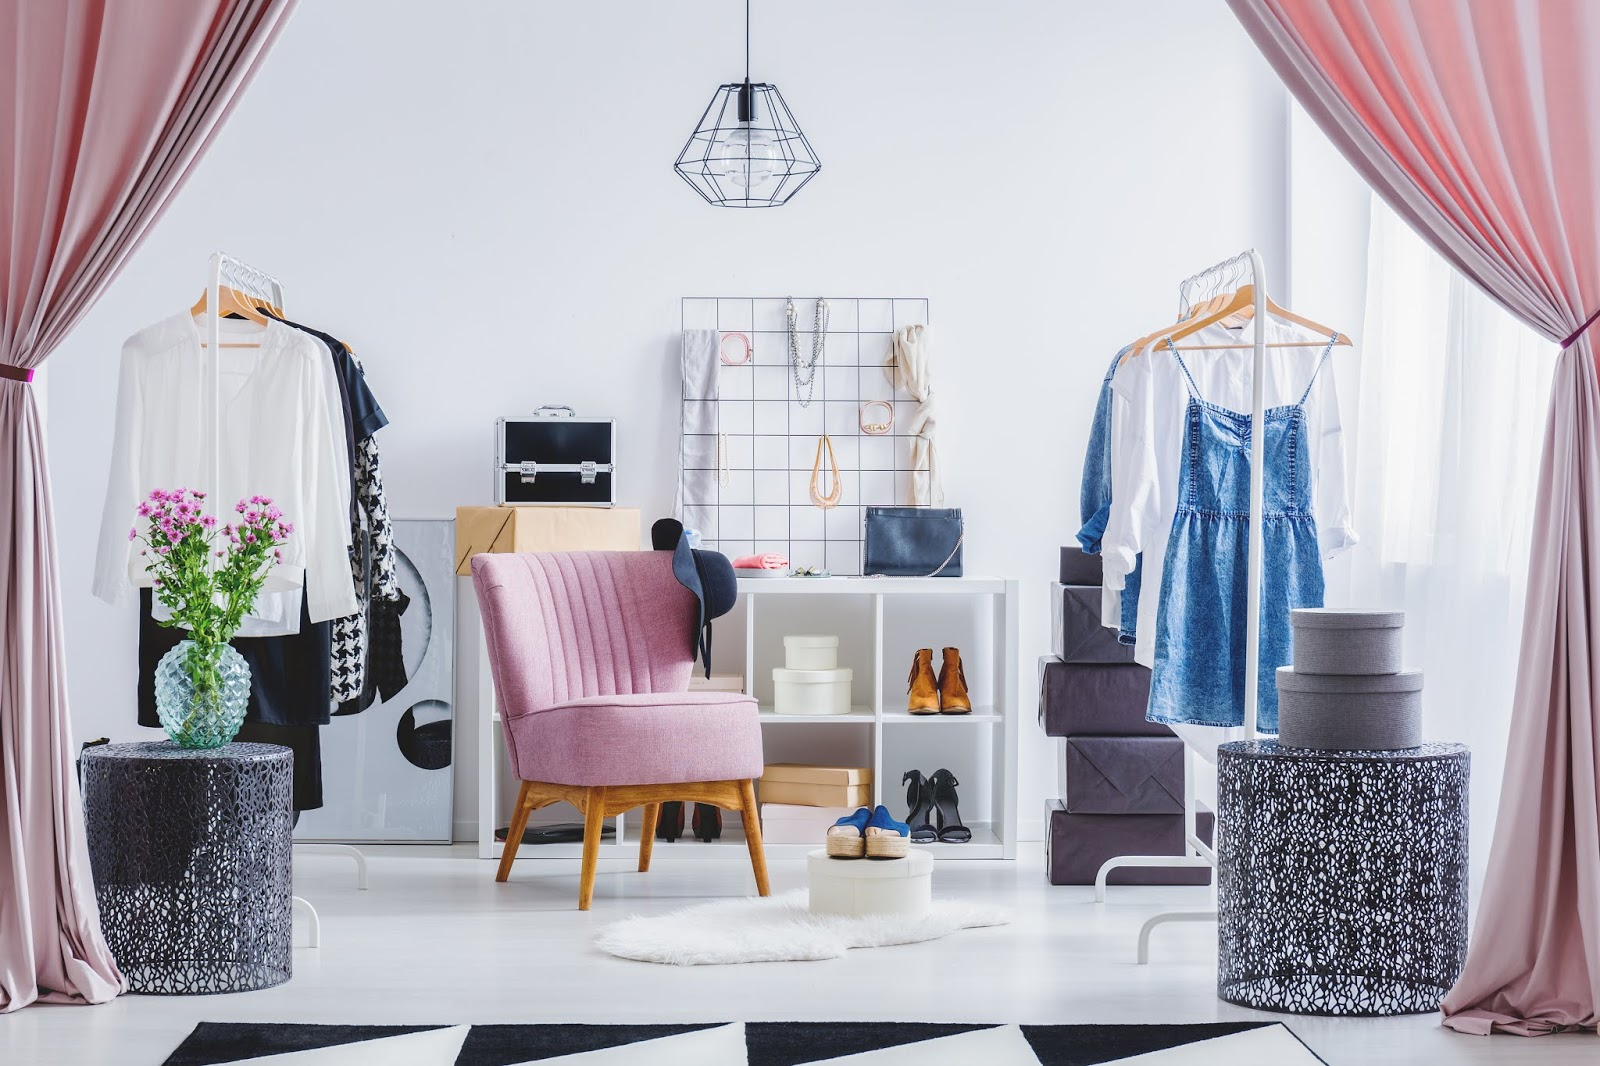 26838d3a18440 Do you feel you lost your style? Do you open your closet and you feel like  you have nothing to wear? Are you concerned that a professional stylist will  ...